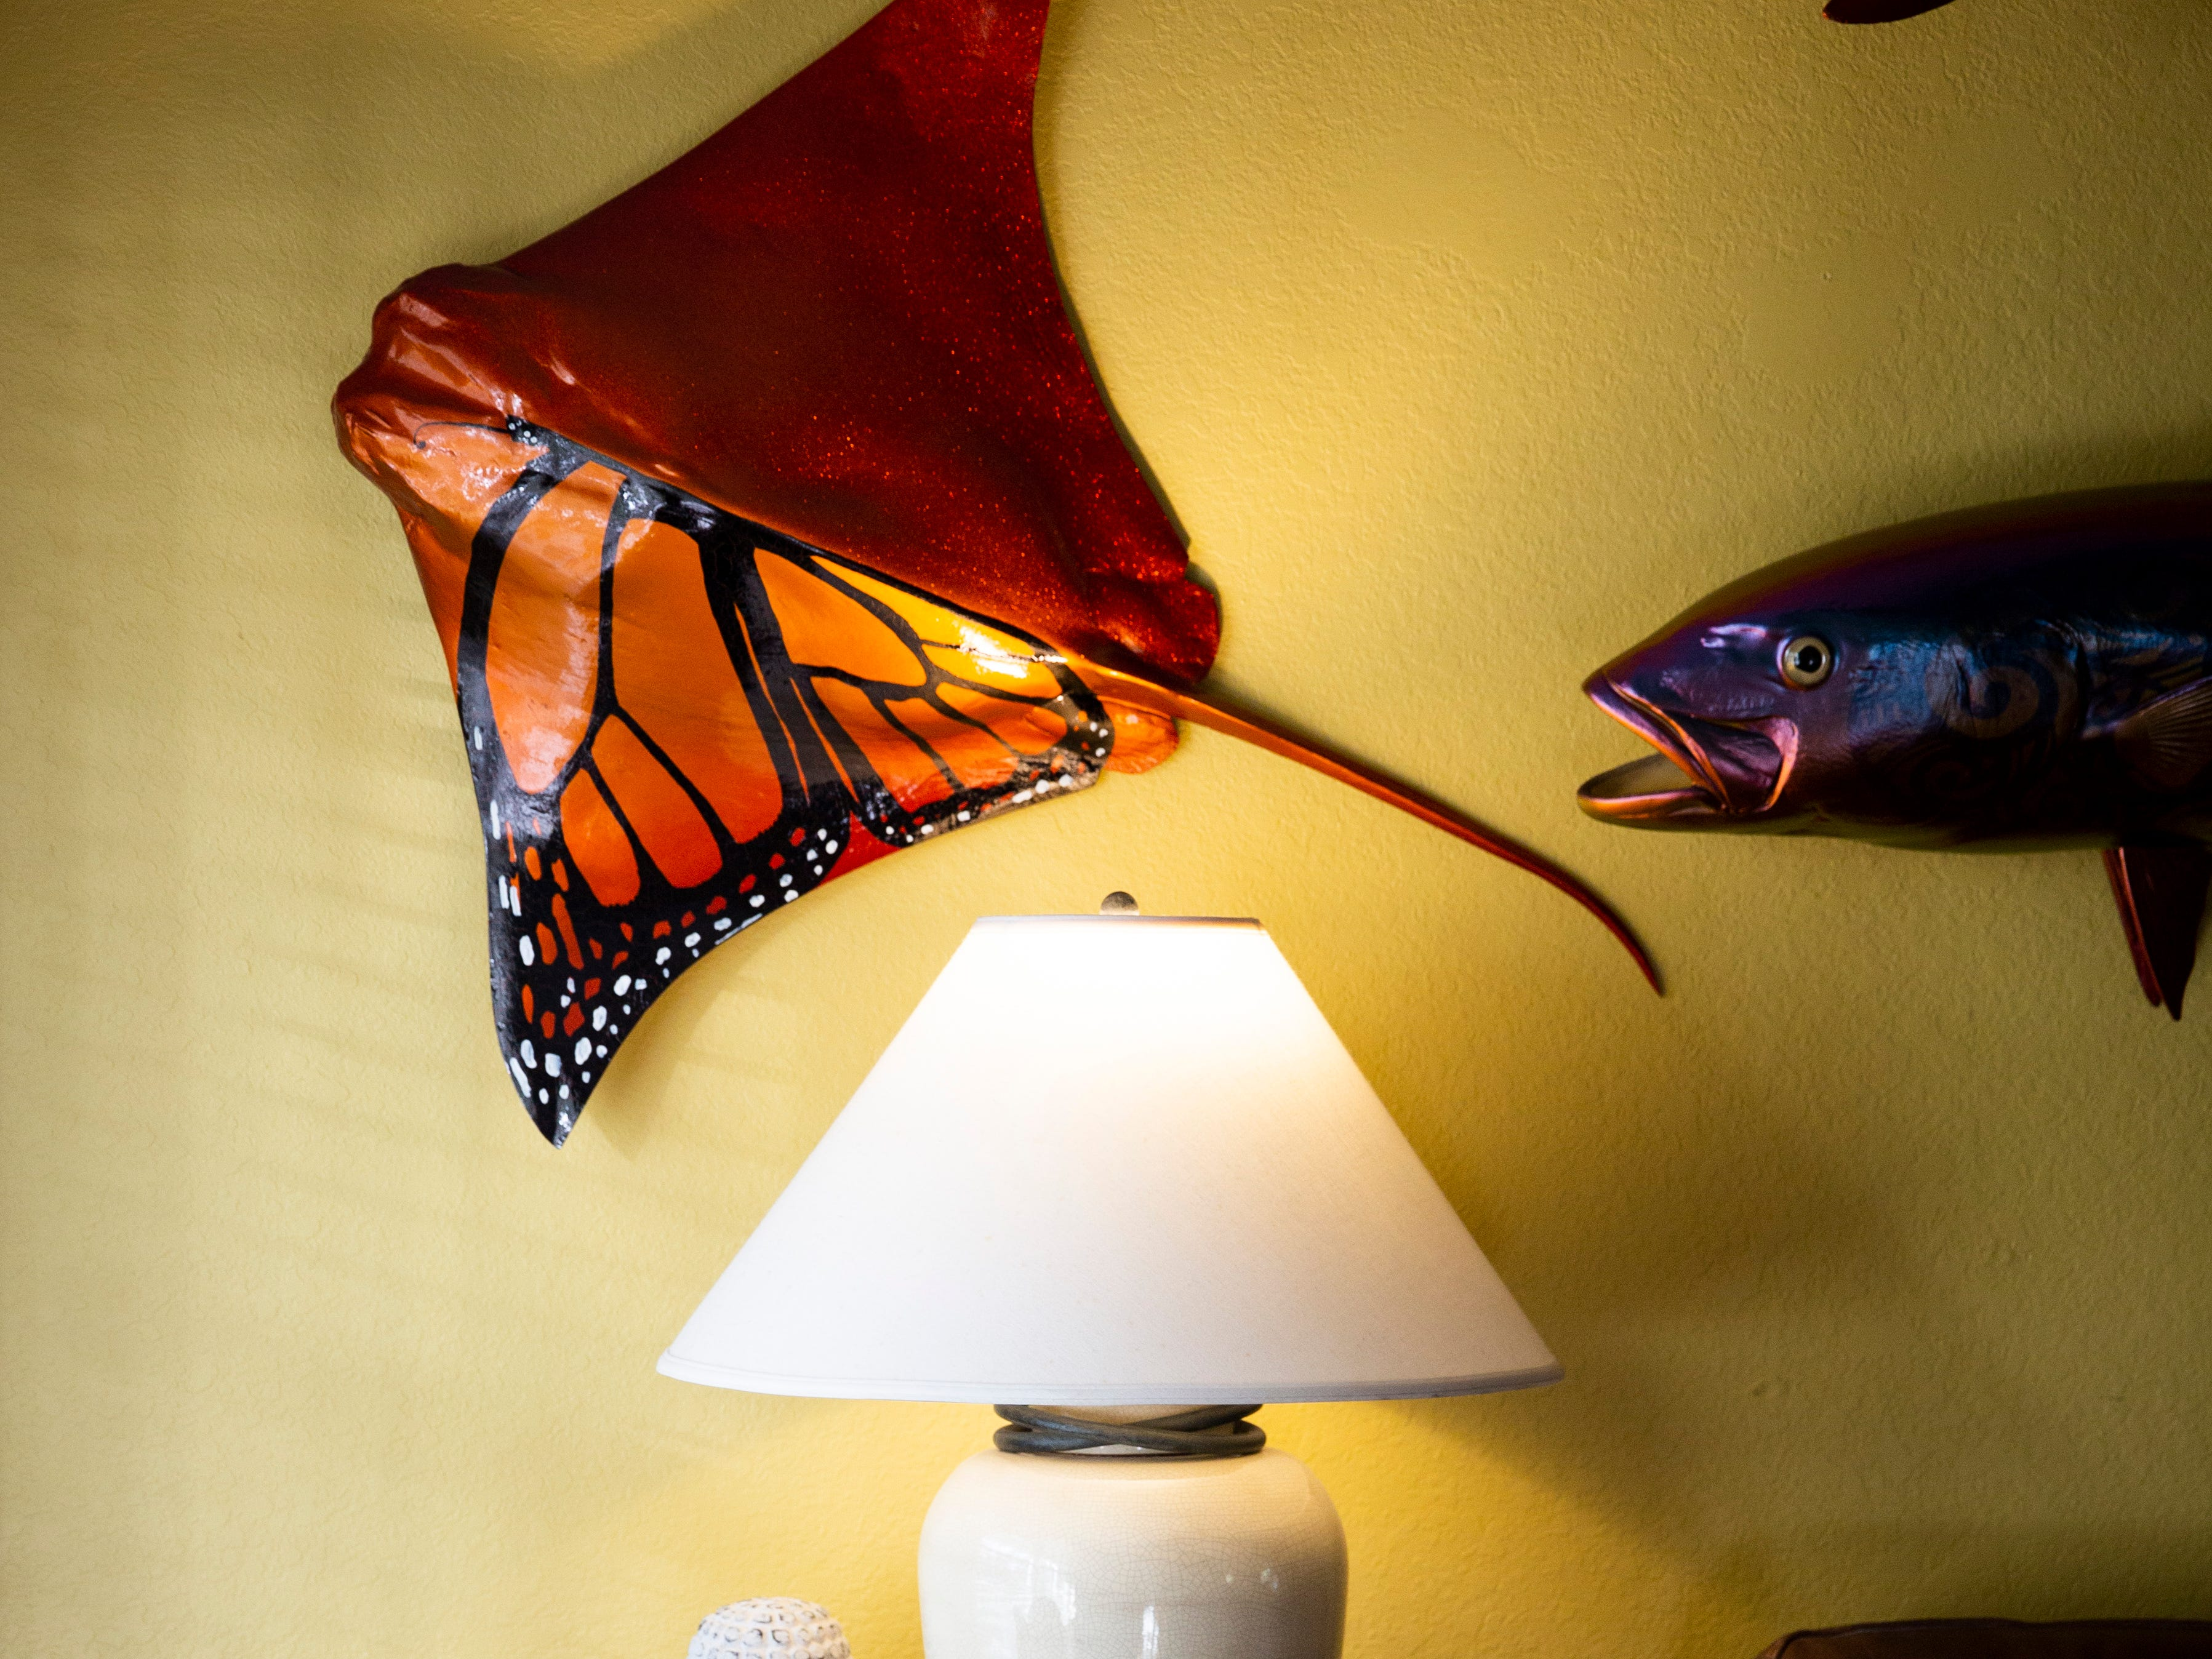 Jake Jones' artwork sits on display in his living room on Wednesday, Jan. 2, 2019, at his home in Golden Gate Estates. Jones said he always wanted to paint a stingray as a butterfly, and he was happy with the results.